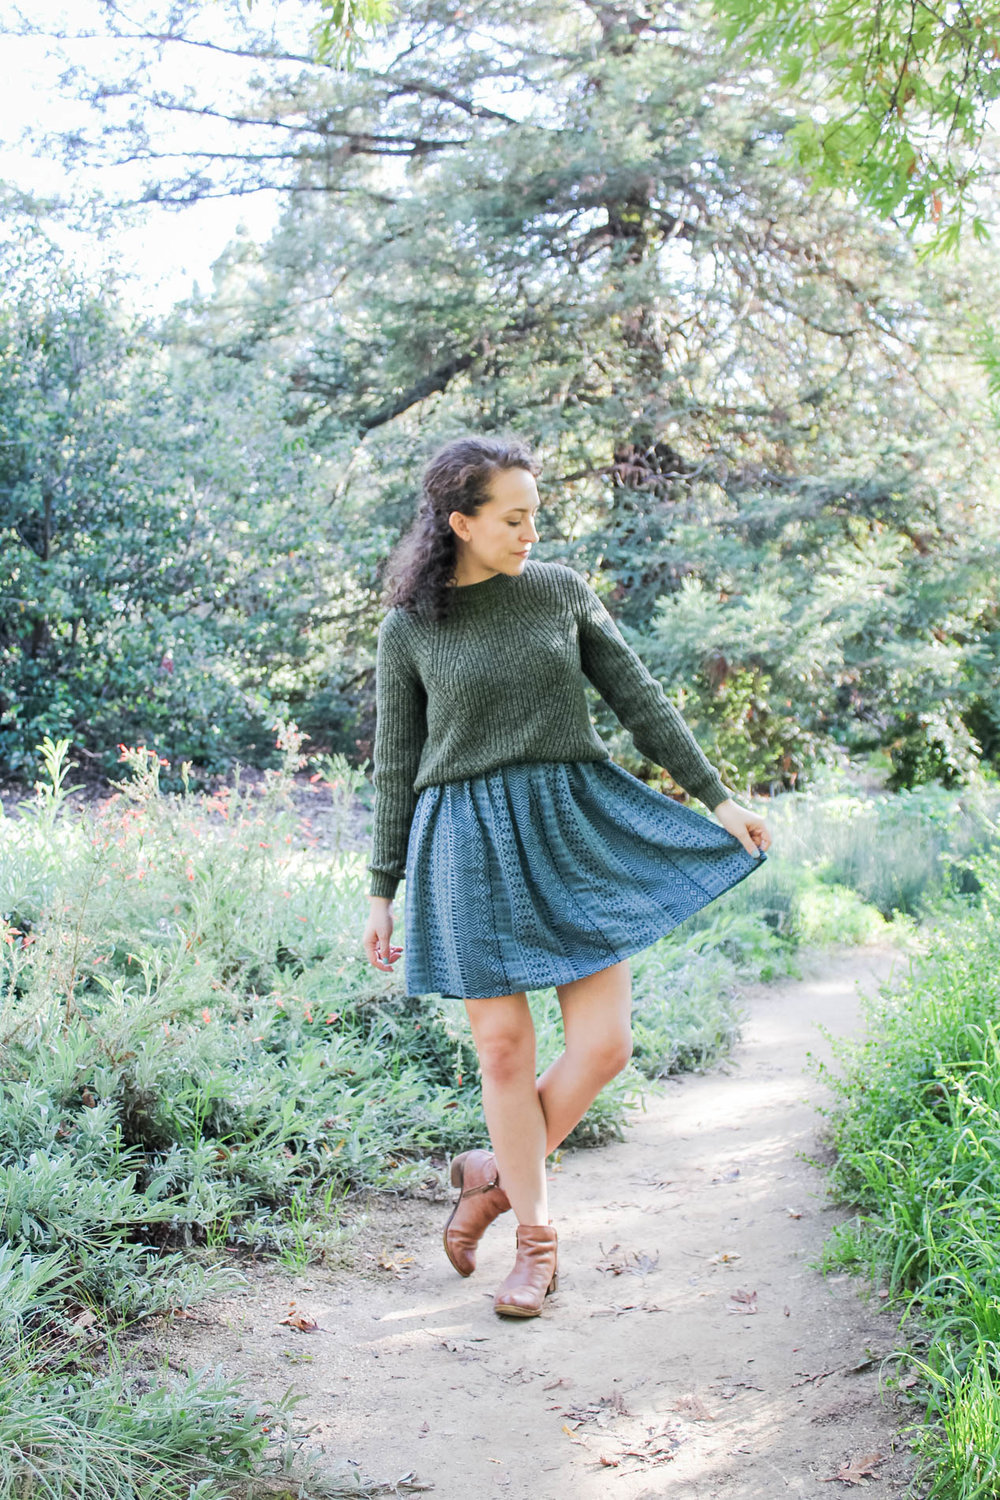 knit jumper layered over a summer dress | fall capsule wardrobe outfit | tintedgreen